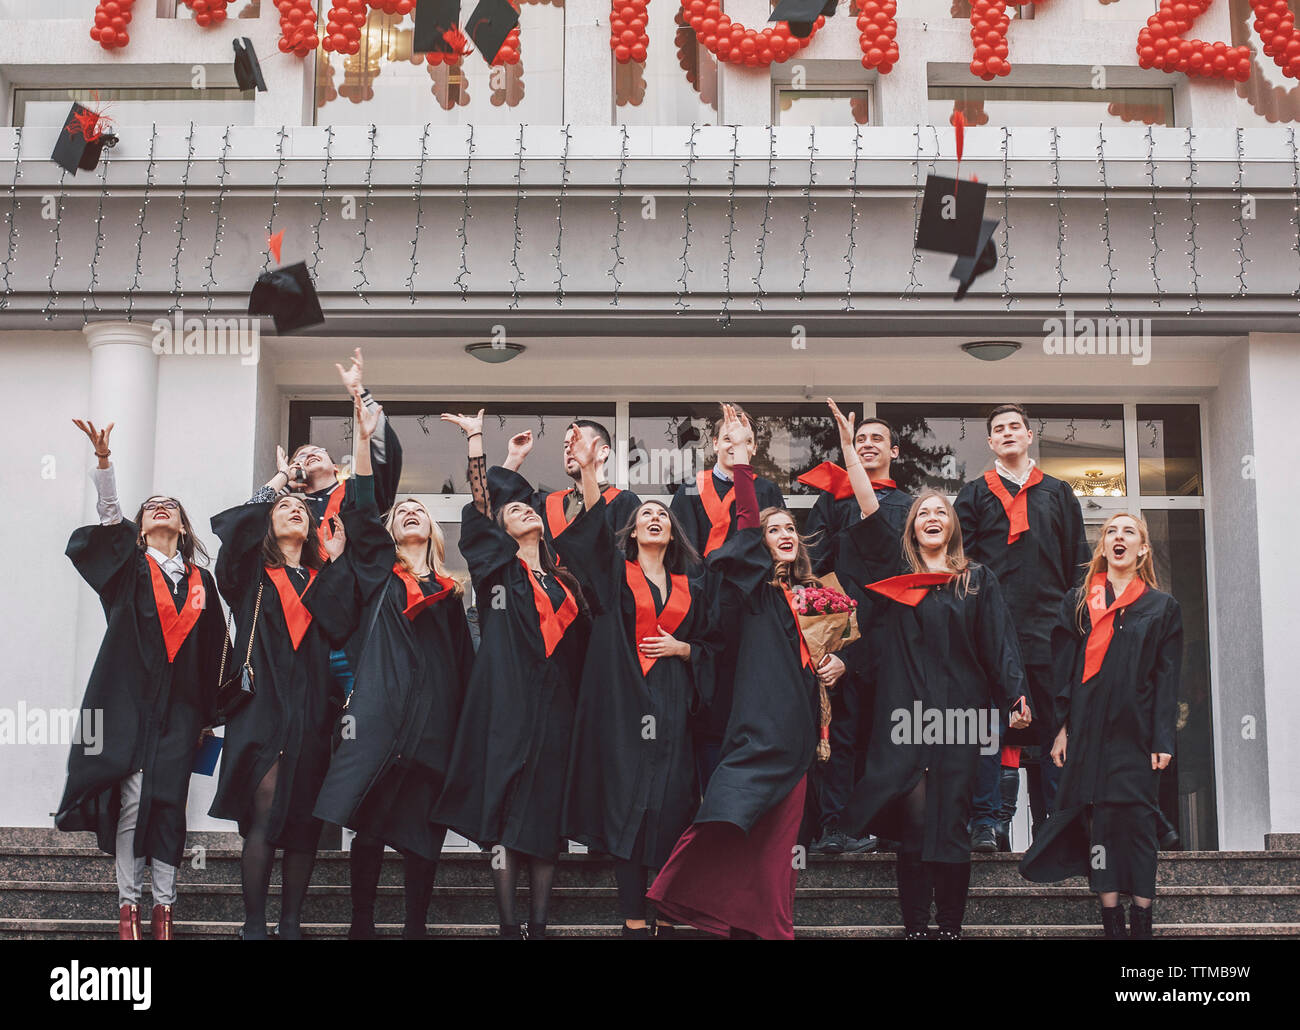 Low angle view of happy students wearing graduation gowns standing on steps by building - Stock Image